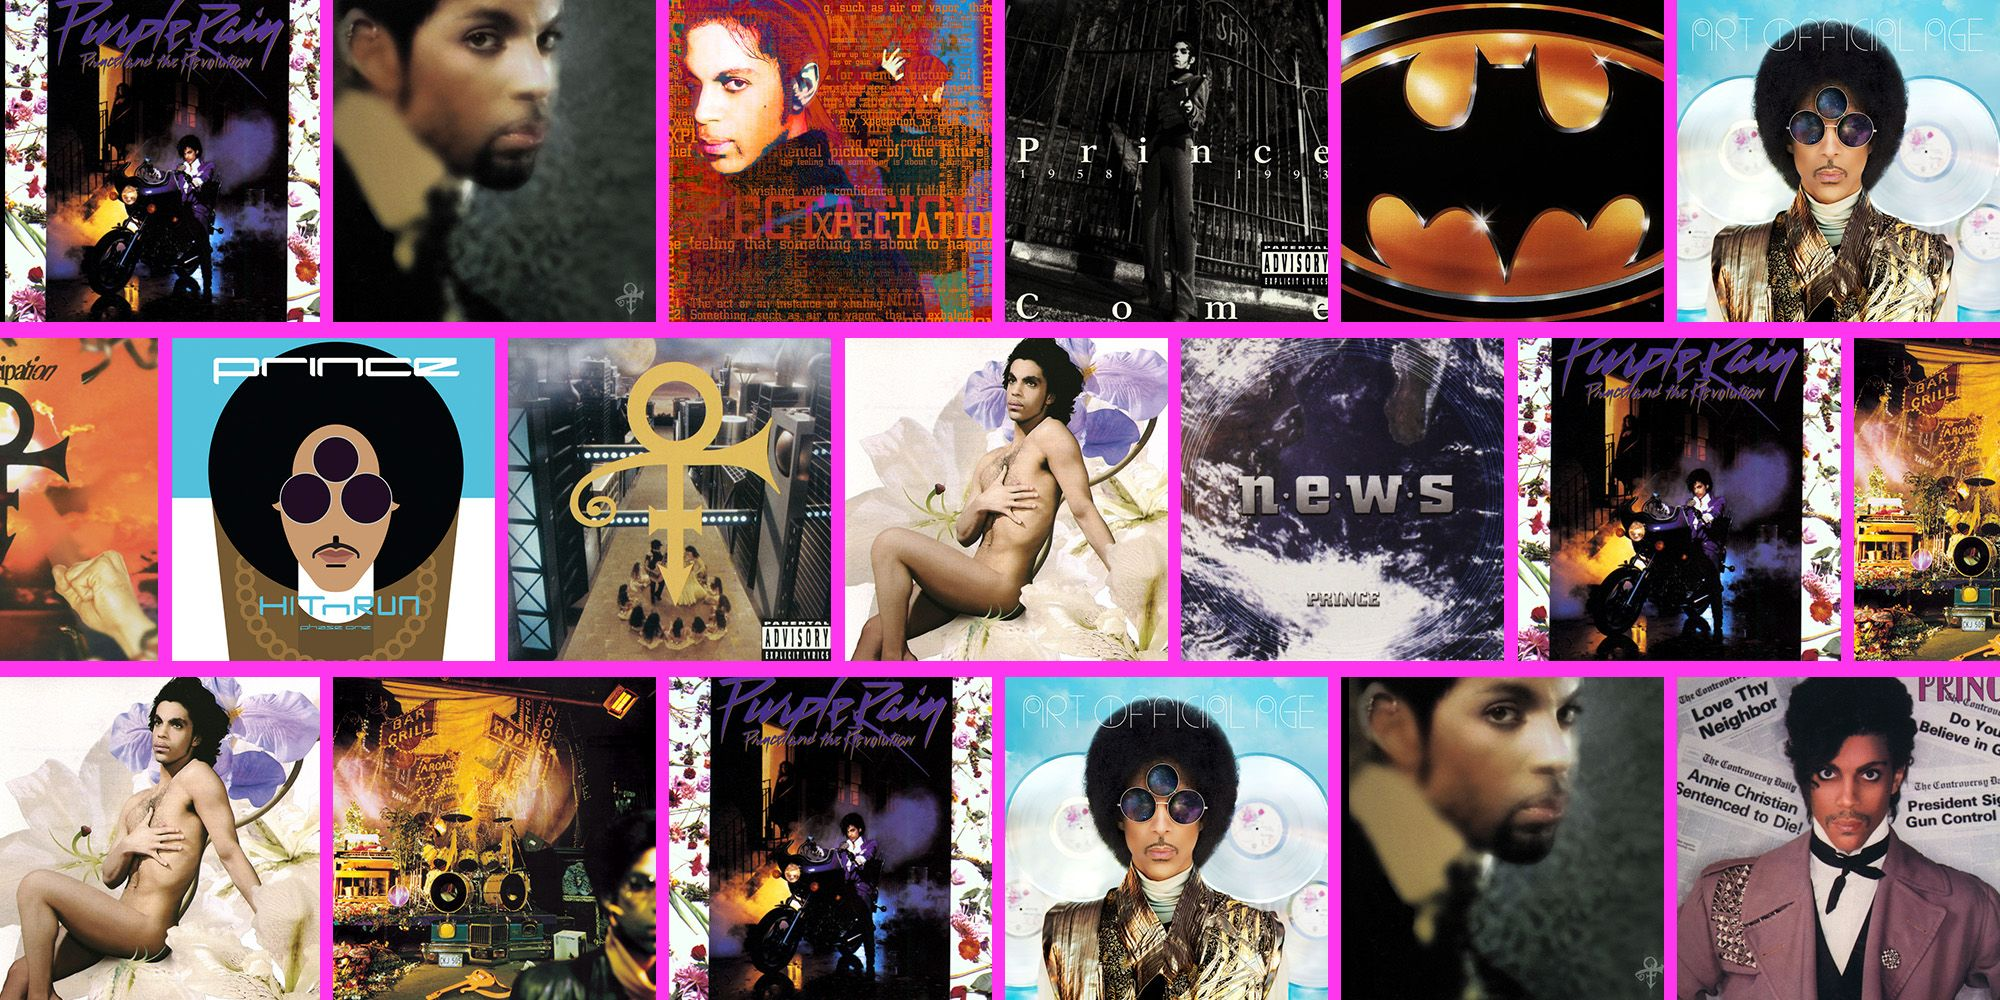 30+ Best Prince Albums of All Time - Every Prince Album, Ranked